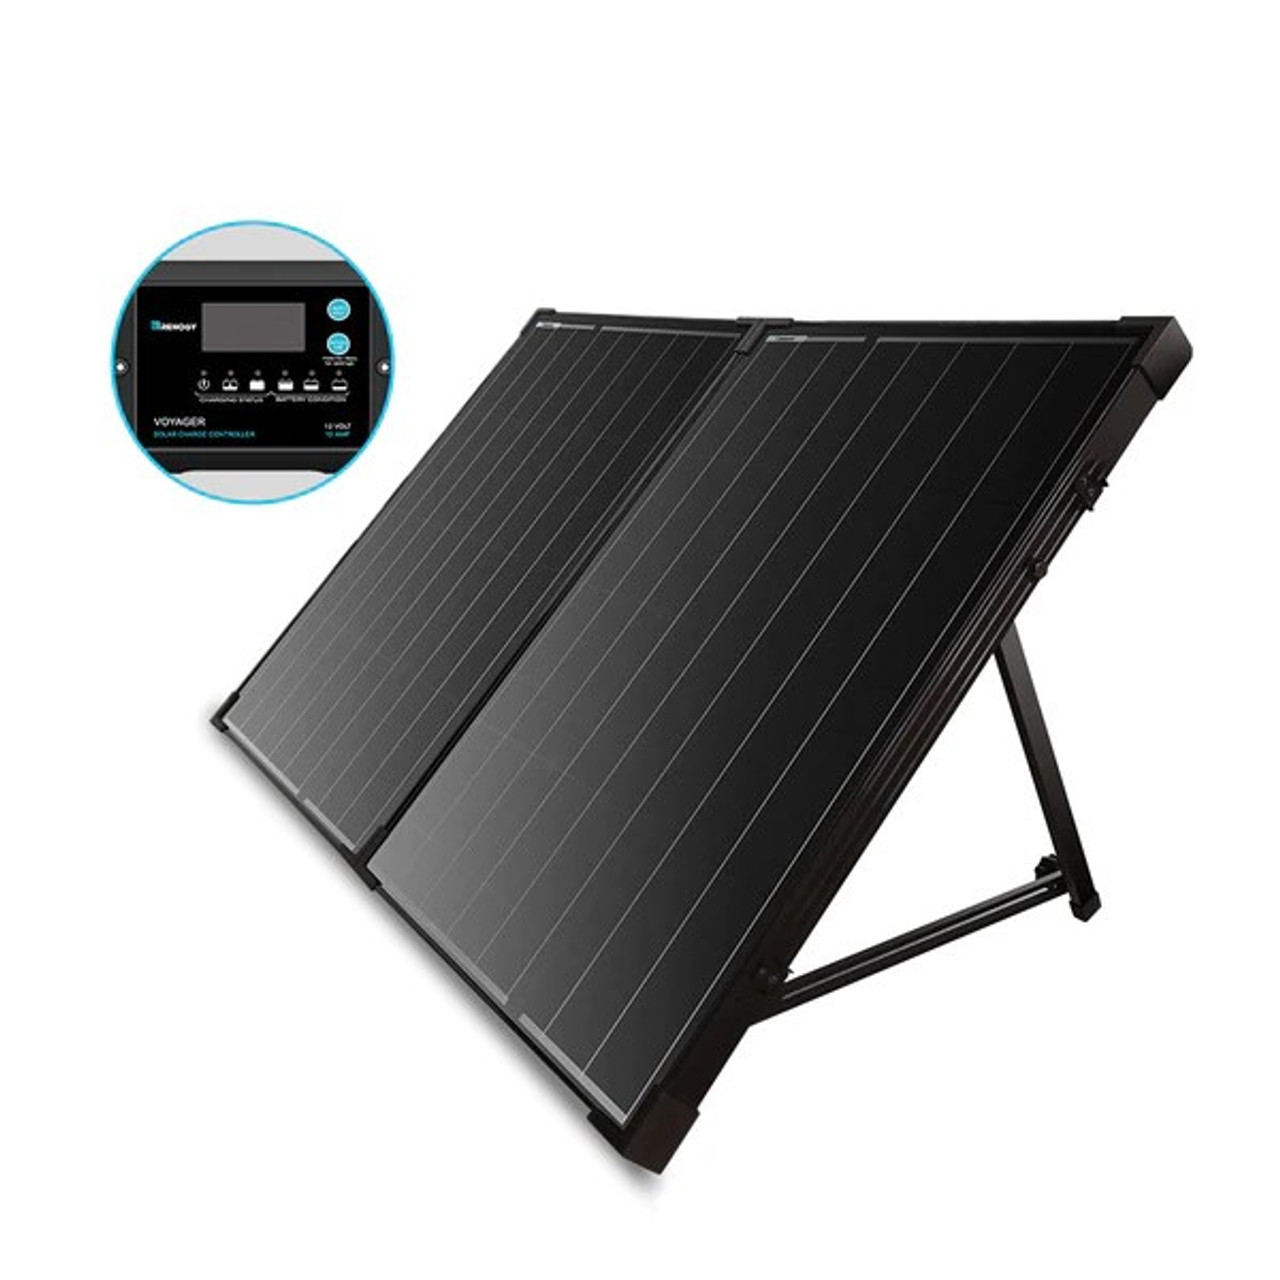 Renogy 100 Watt 12 Volt Monocrystalline Foldable Solar Suitcase With 10a Voyager Charge Controller Solartown Com